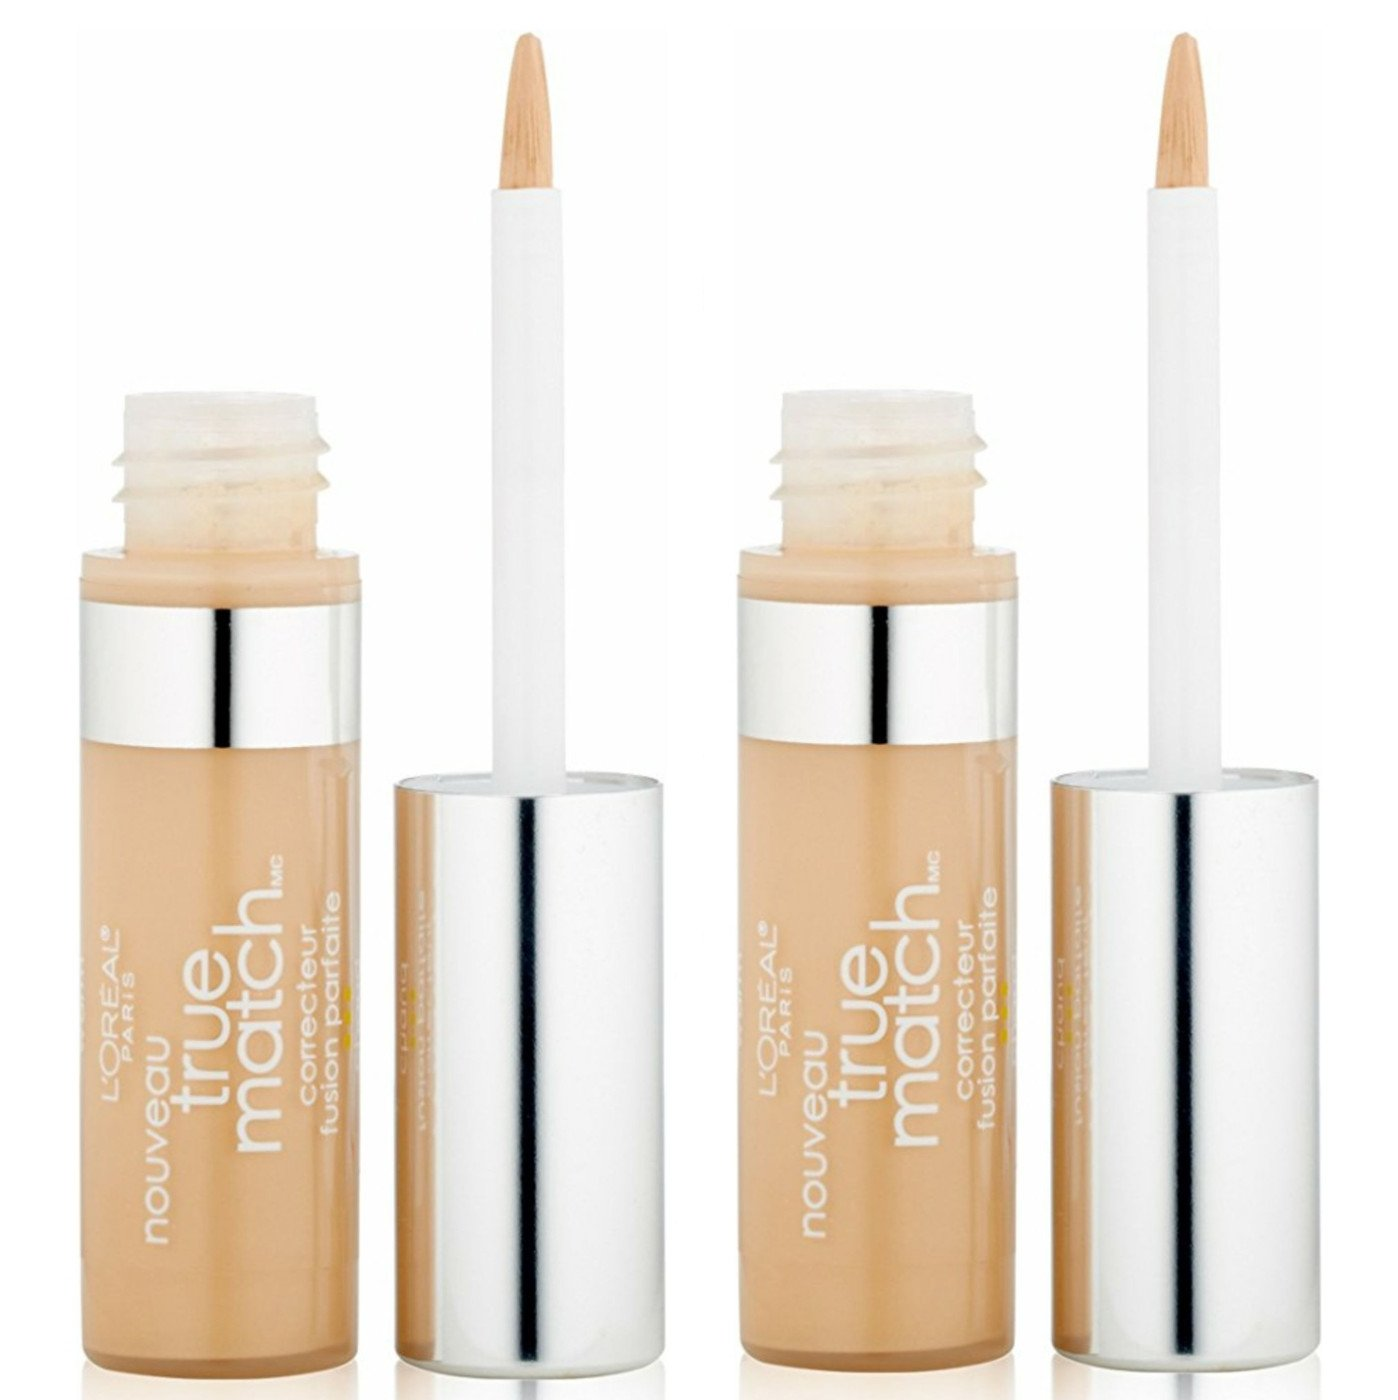 L'Oréal Paris True Match Super-Blendable Concealer, Light/Medium Warm, 0.17 fl. oz. L' Oreal Paris Cosmetics 17004